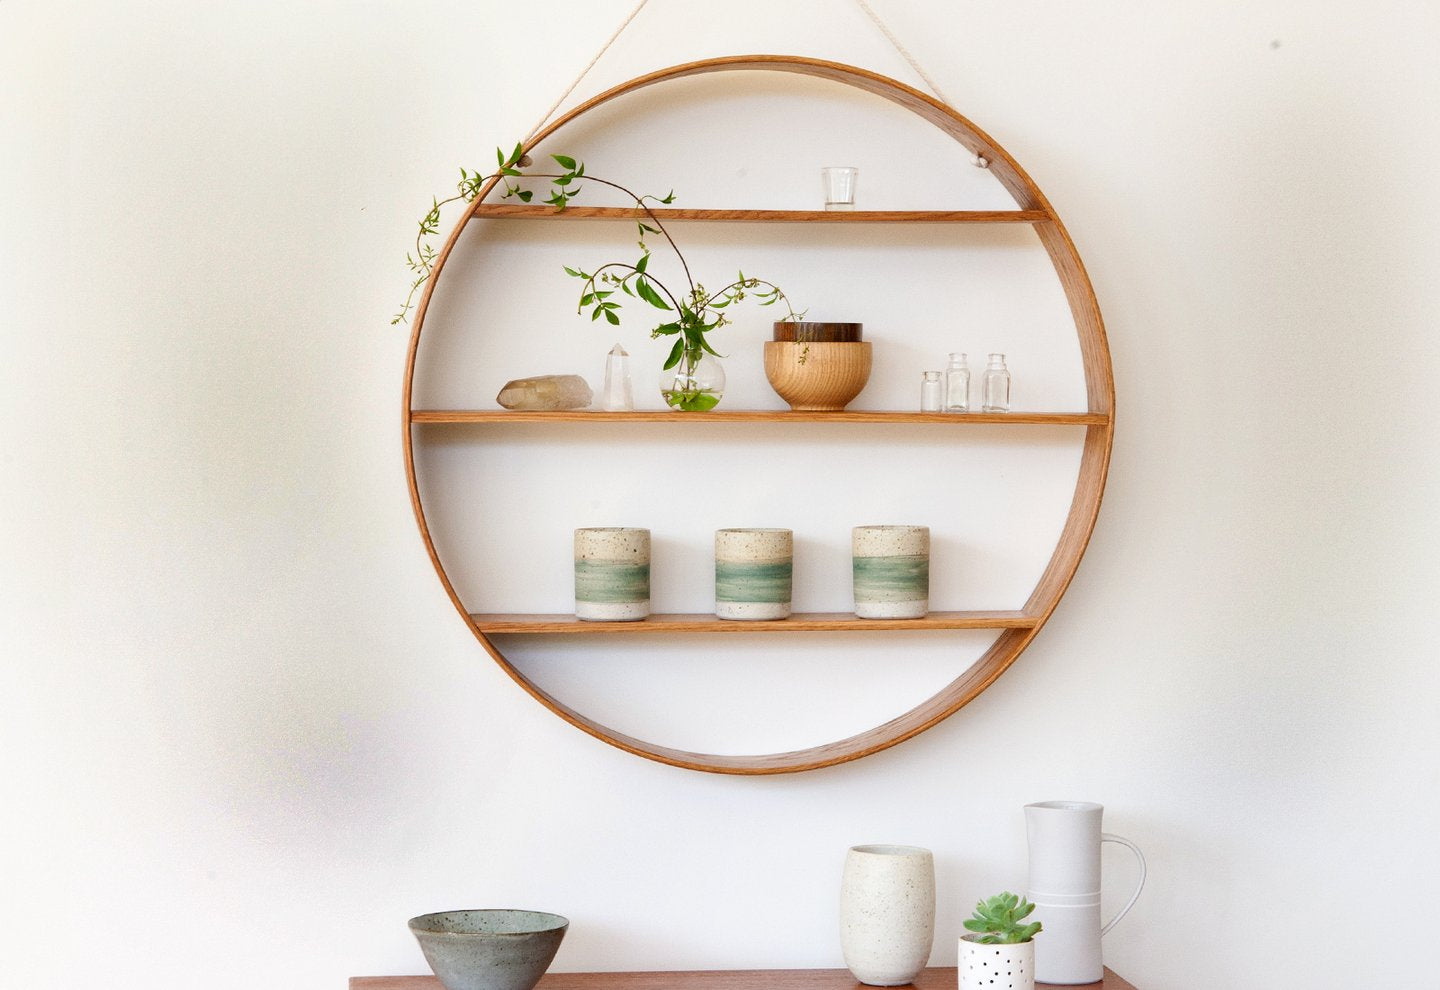 Original Oak Circle Shelves - Classic Mid Century Design